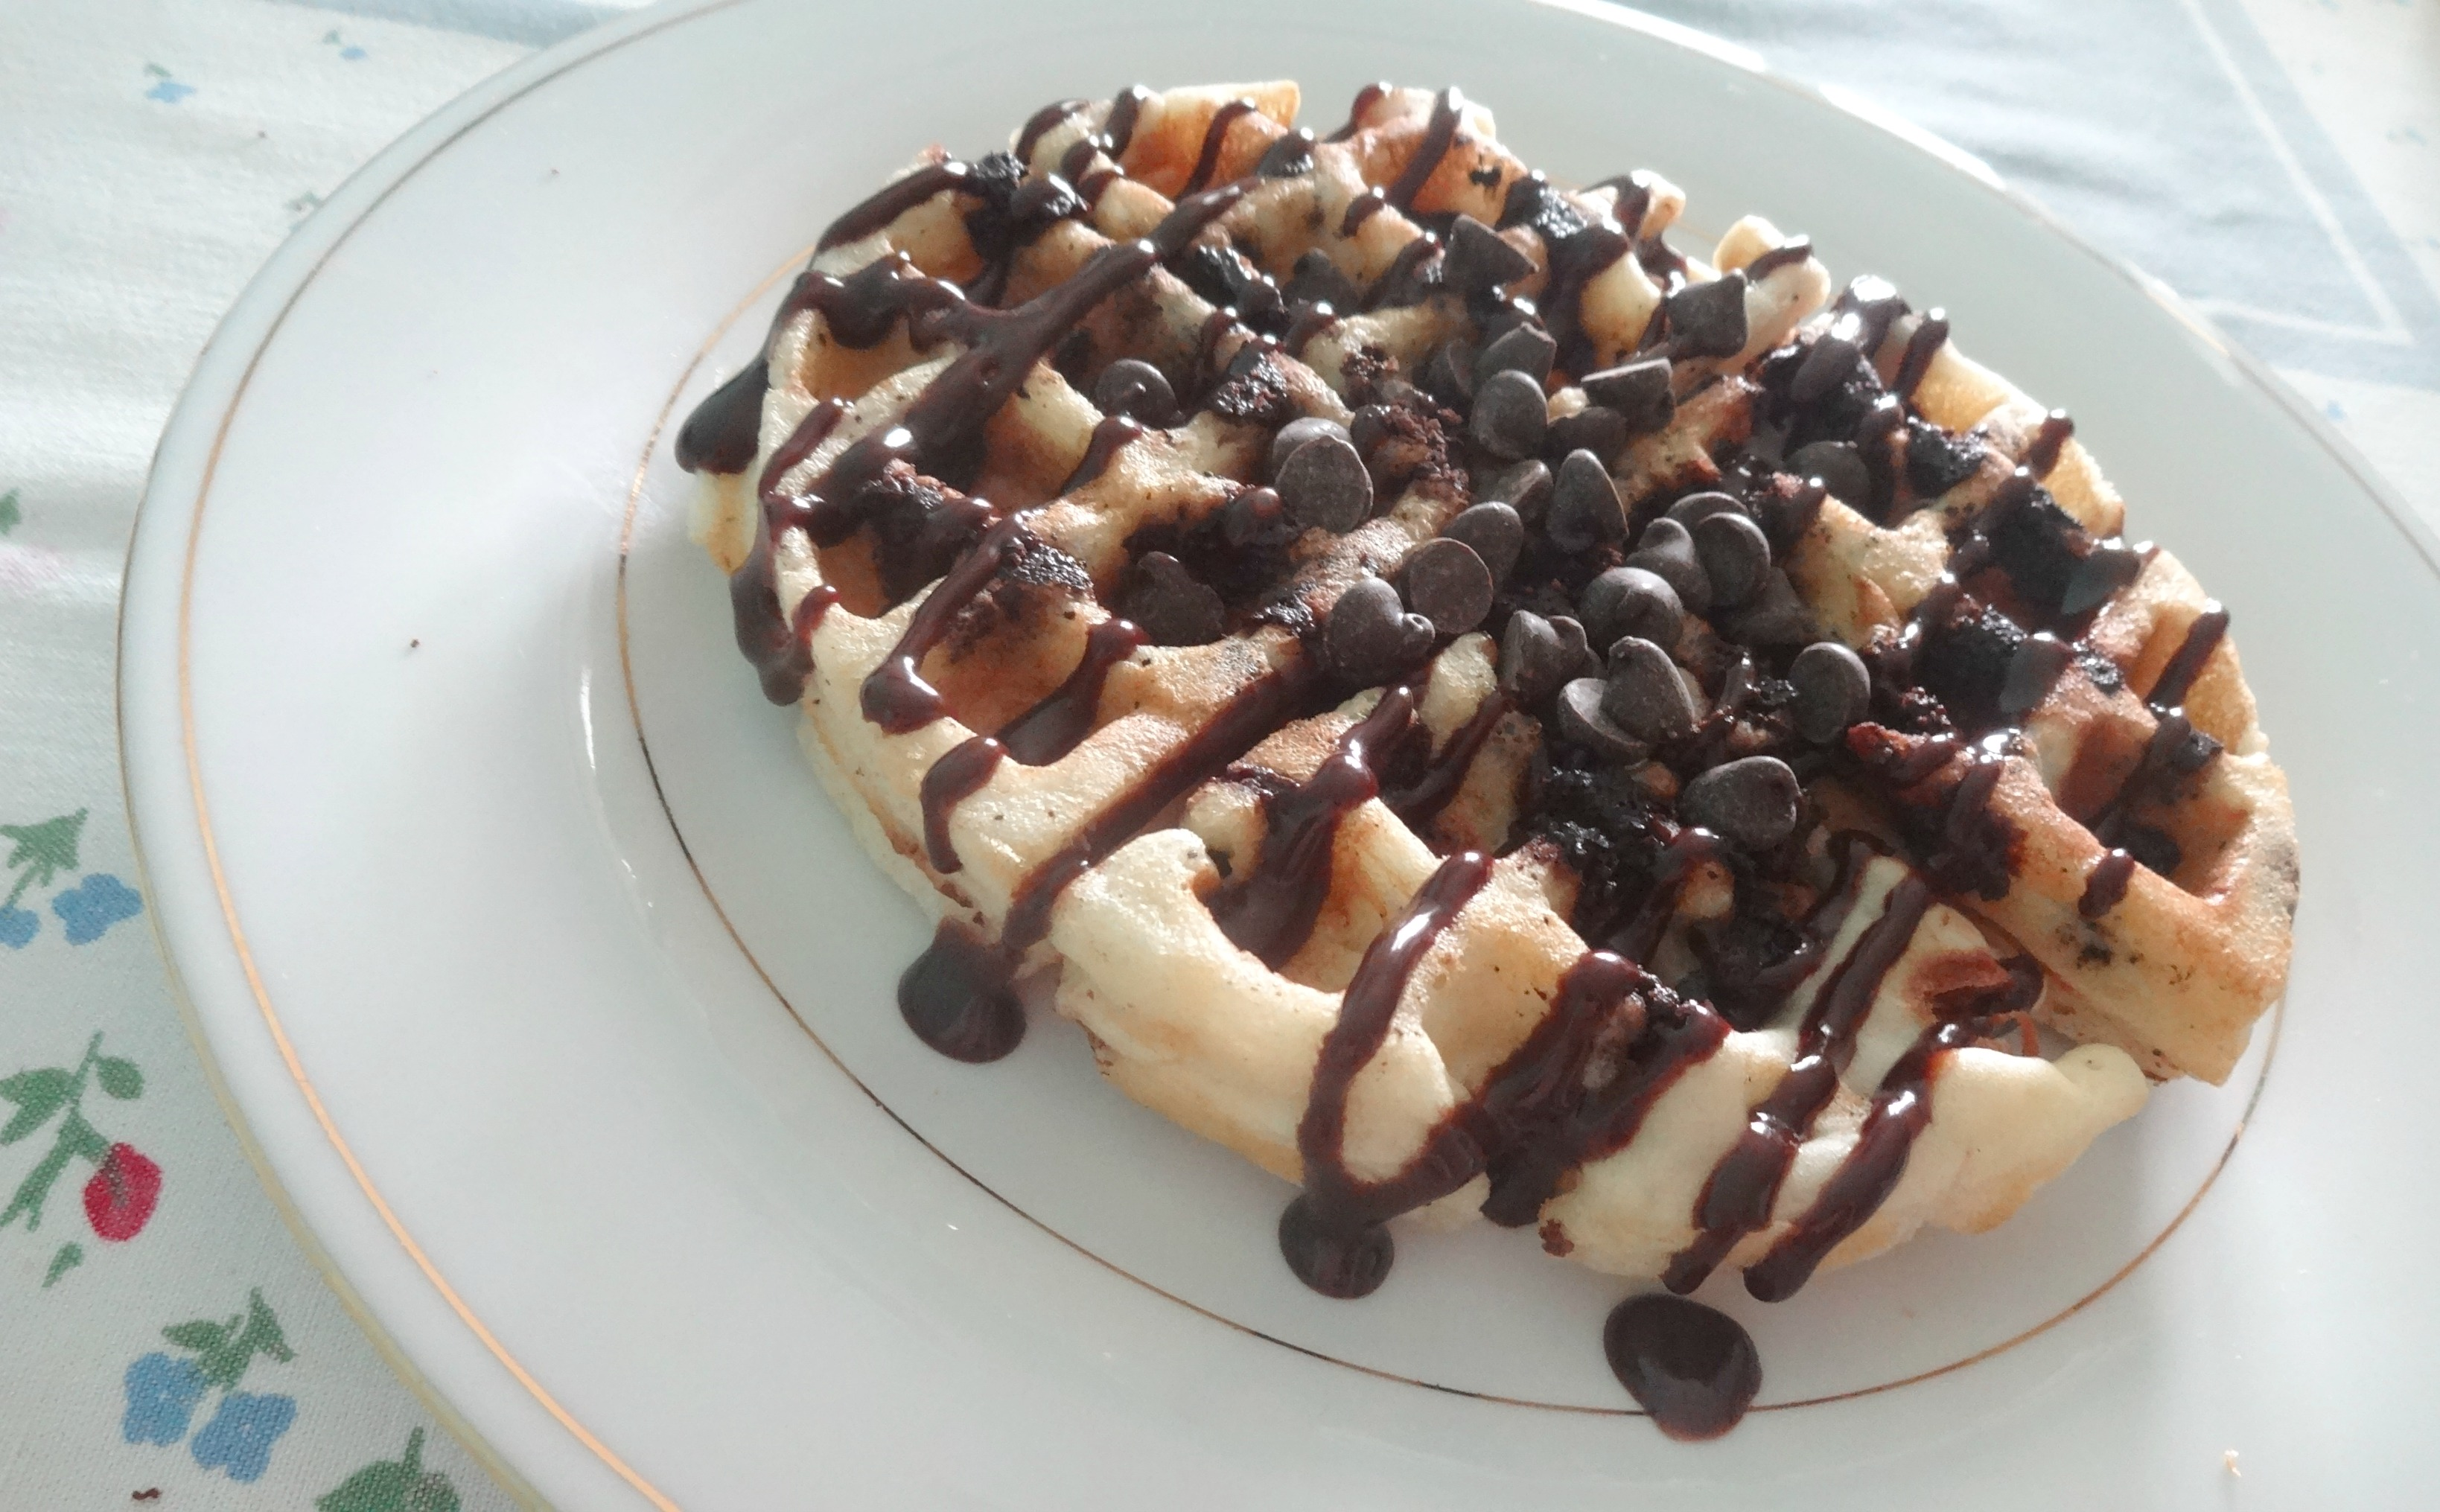 Drizzle with chocolate and